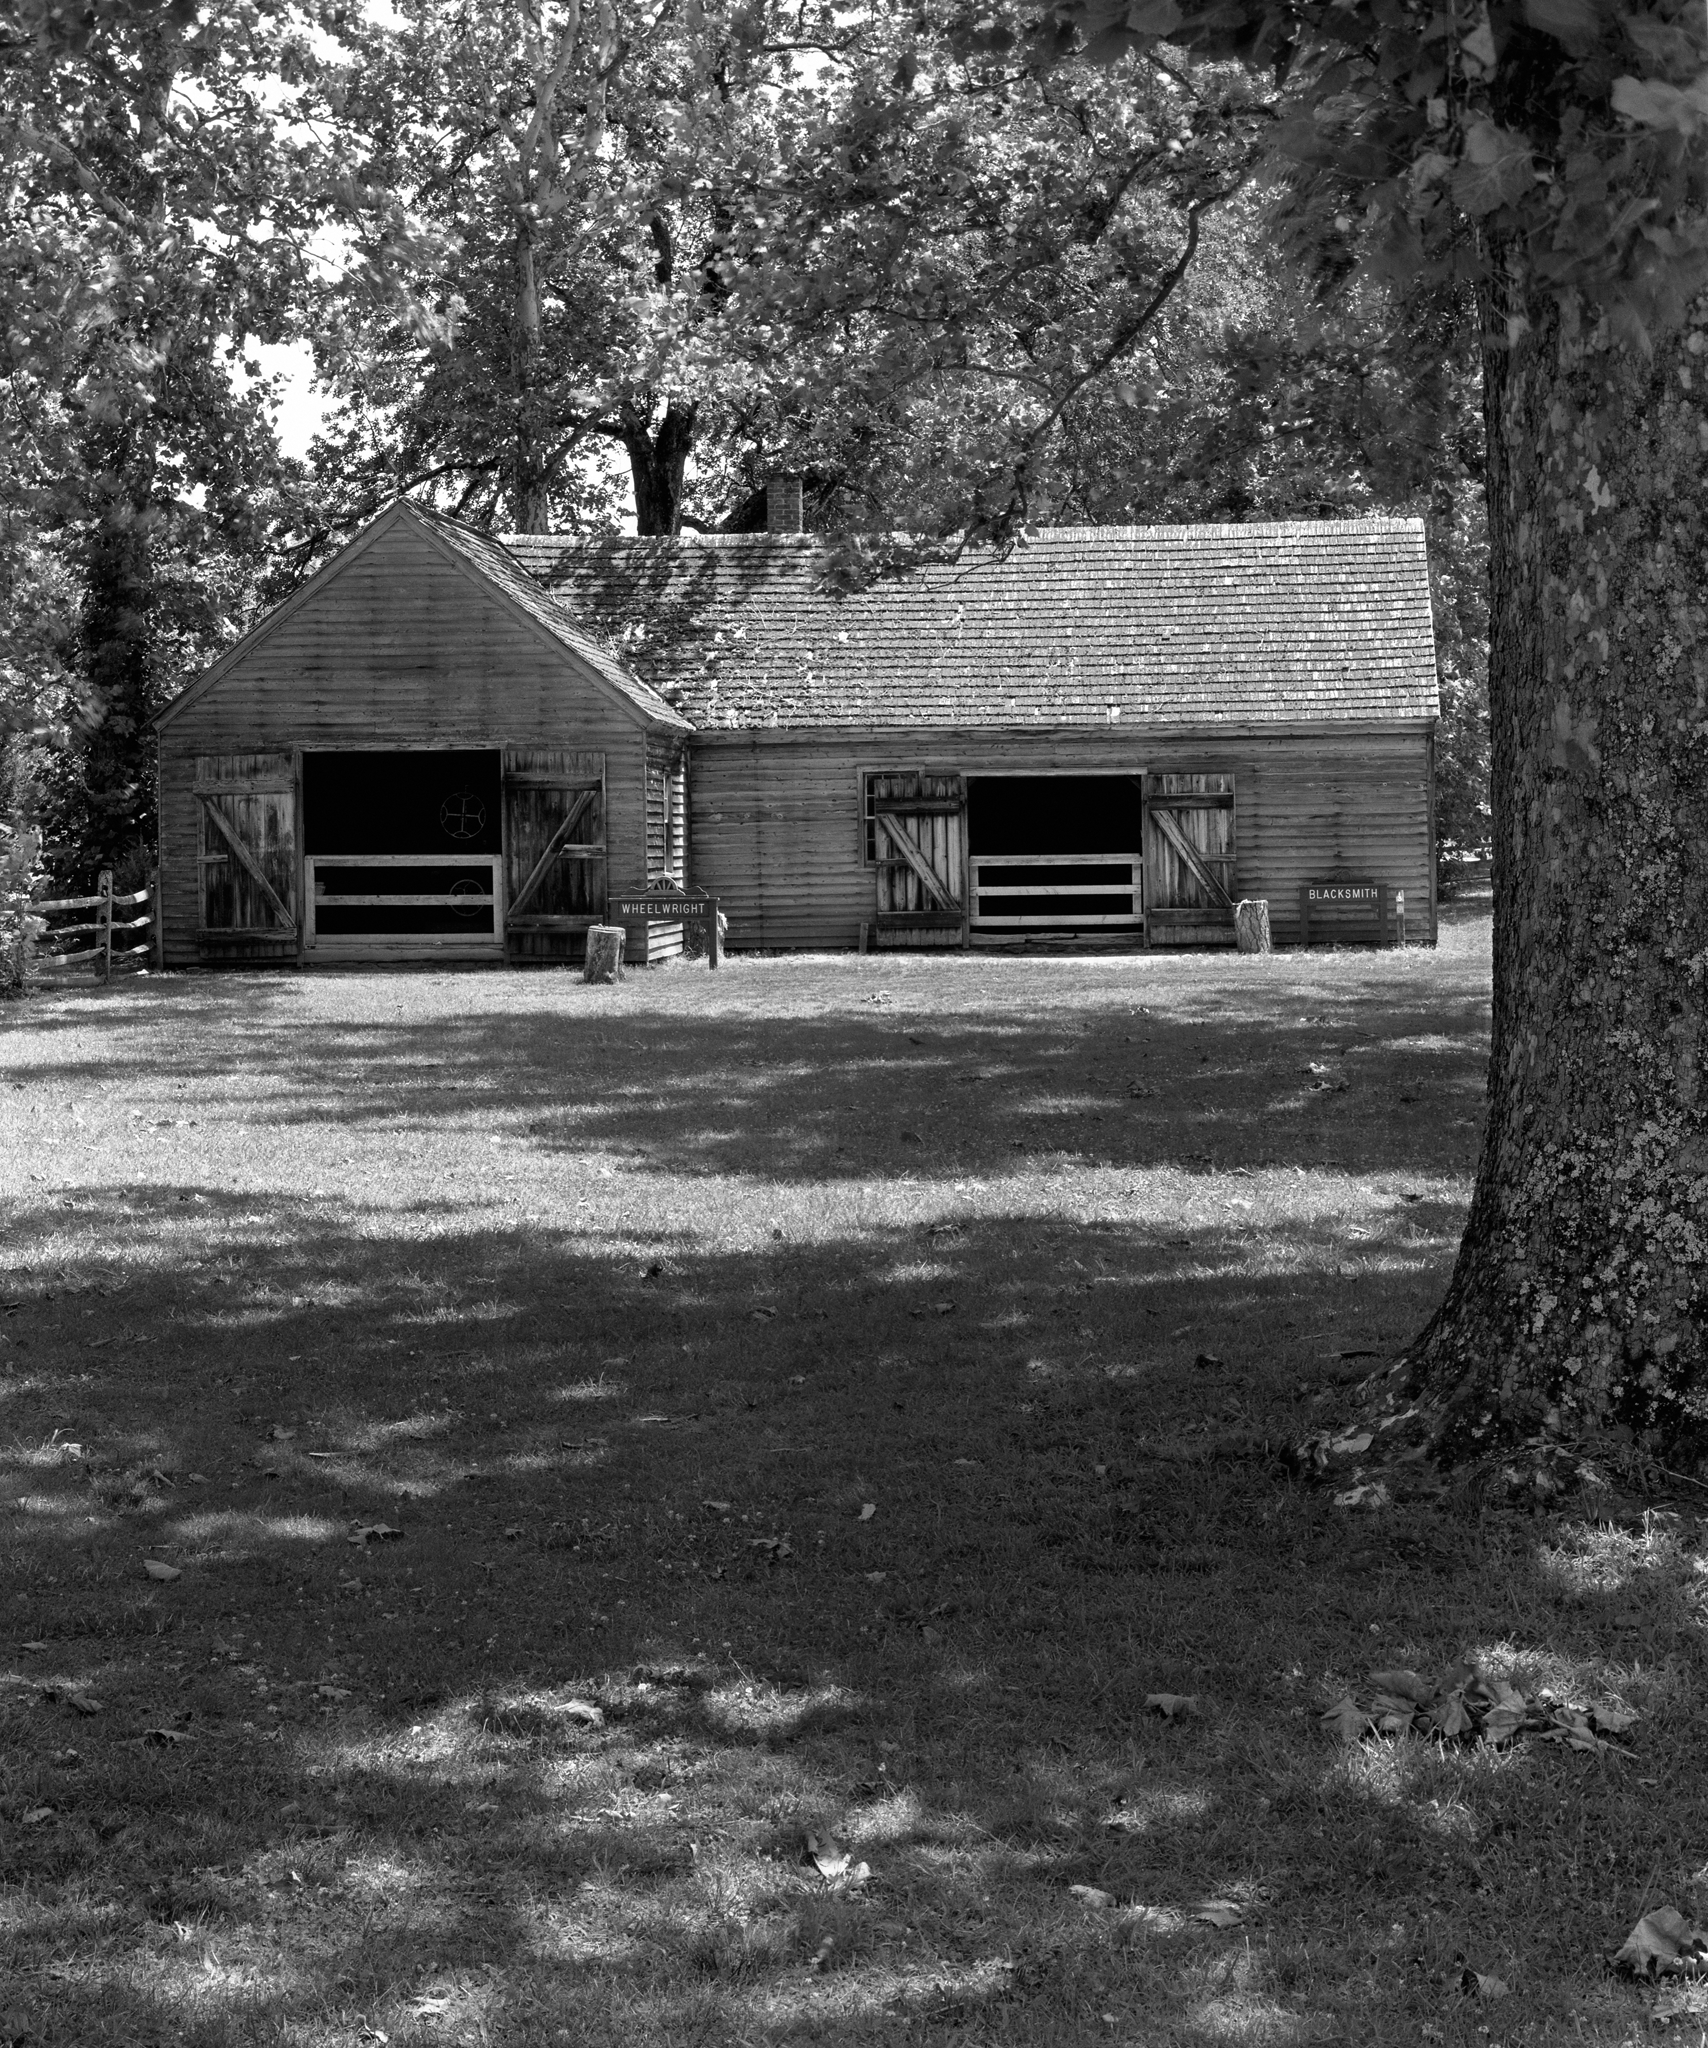 4x5_for_365_project_0191_Batsto_wheelwright_and_blacksmith_shop.png